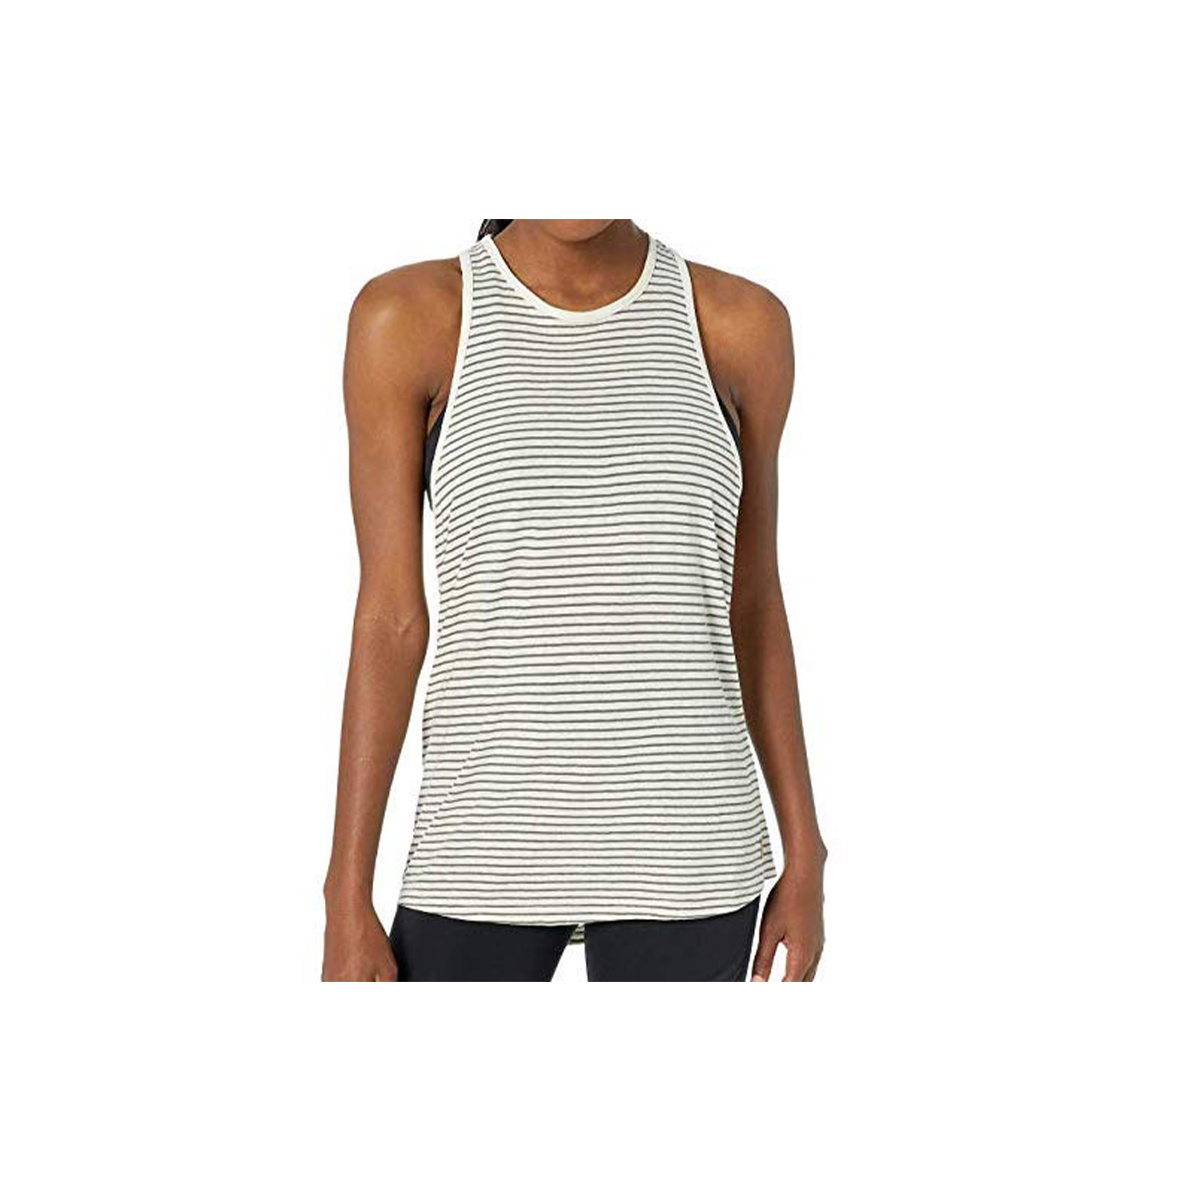 Tentree Women's Piney Tank